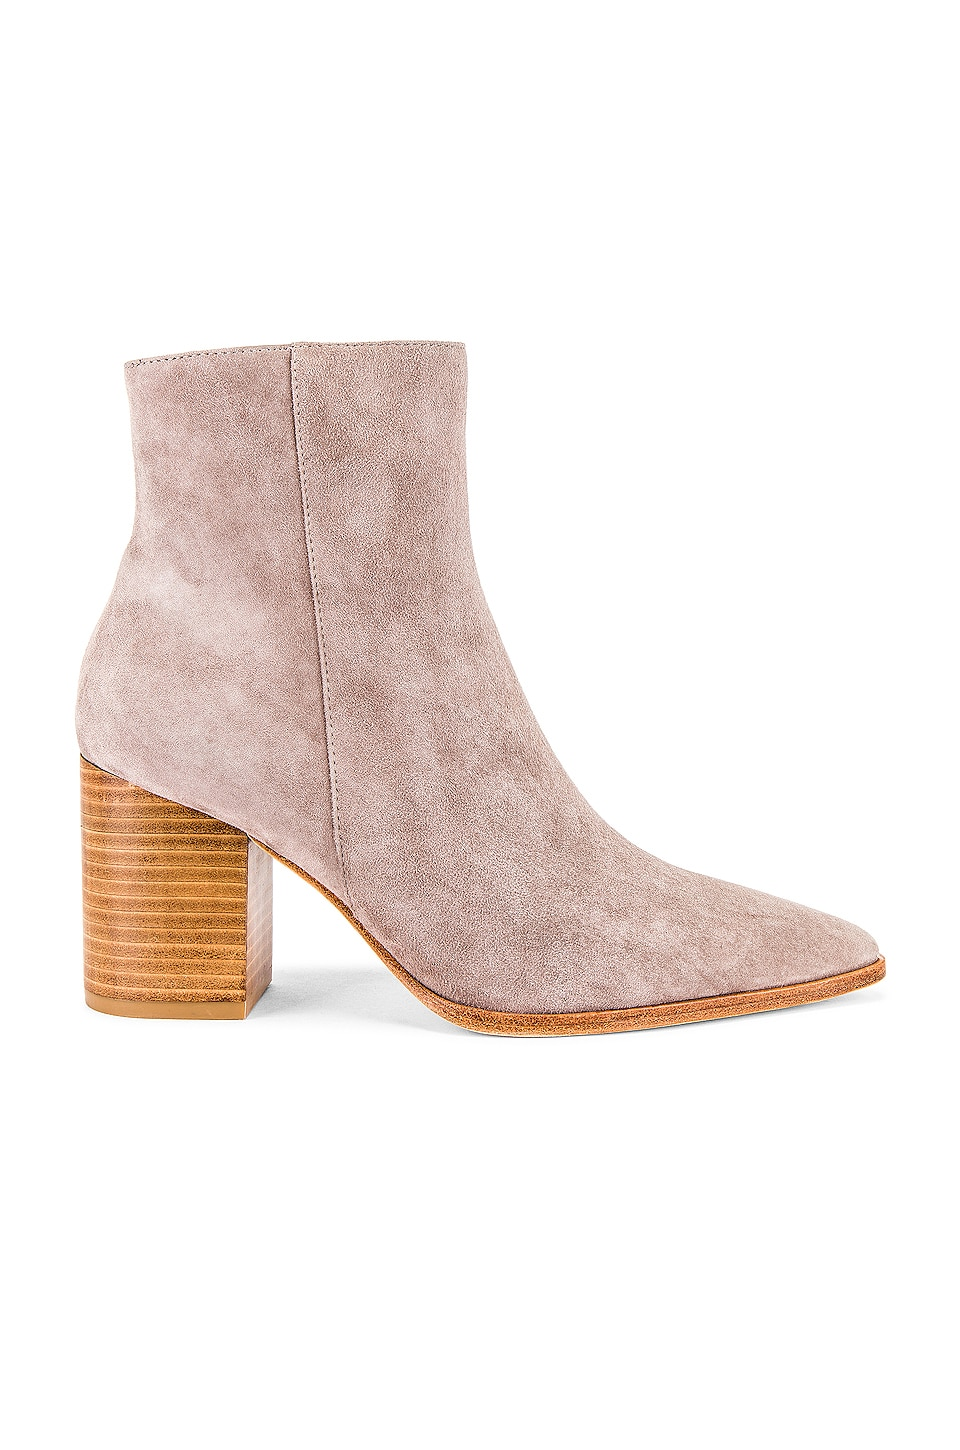 RAYE Merit Bootie in Taupe